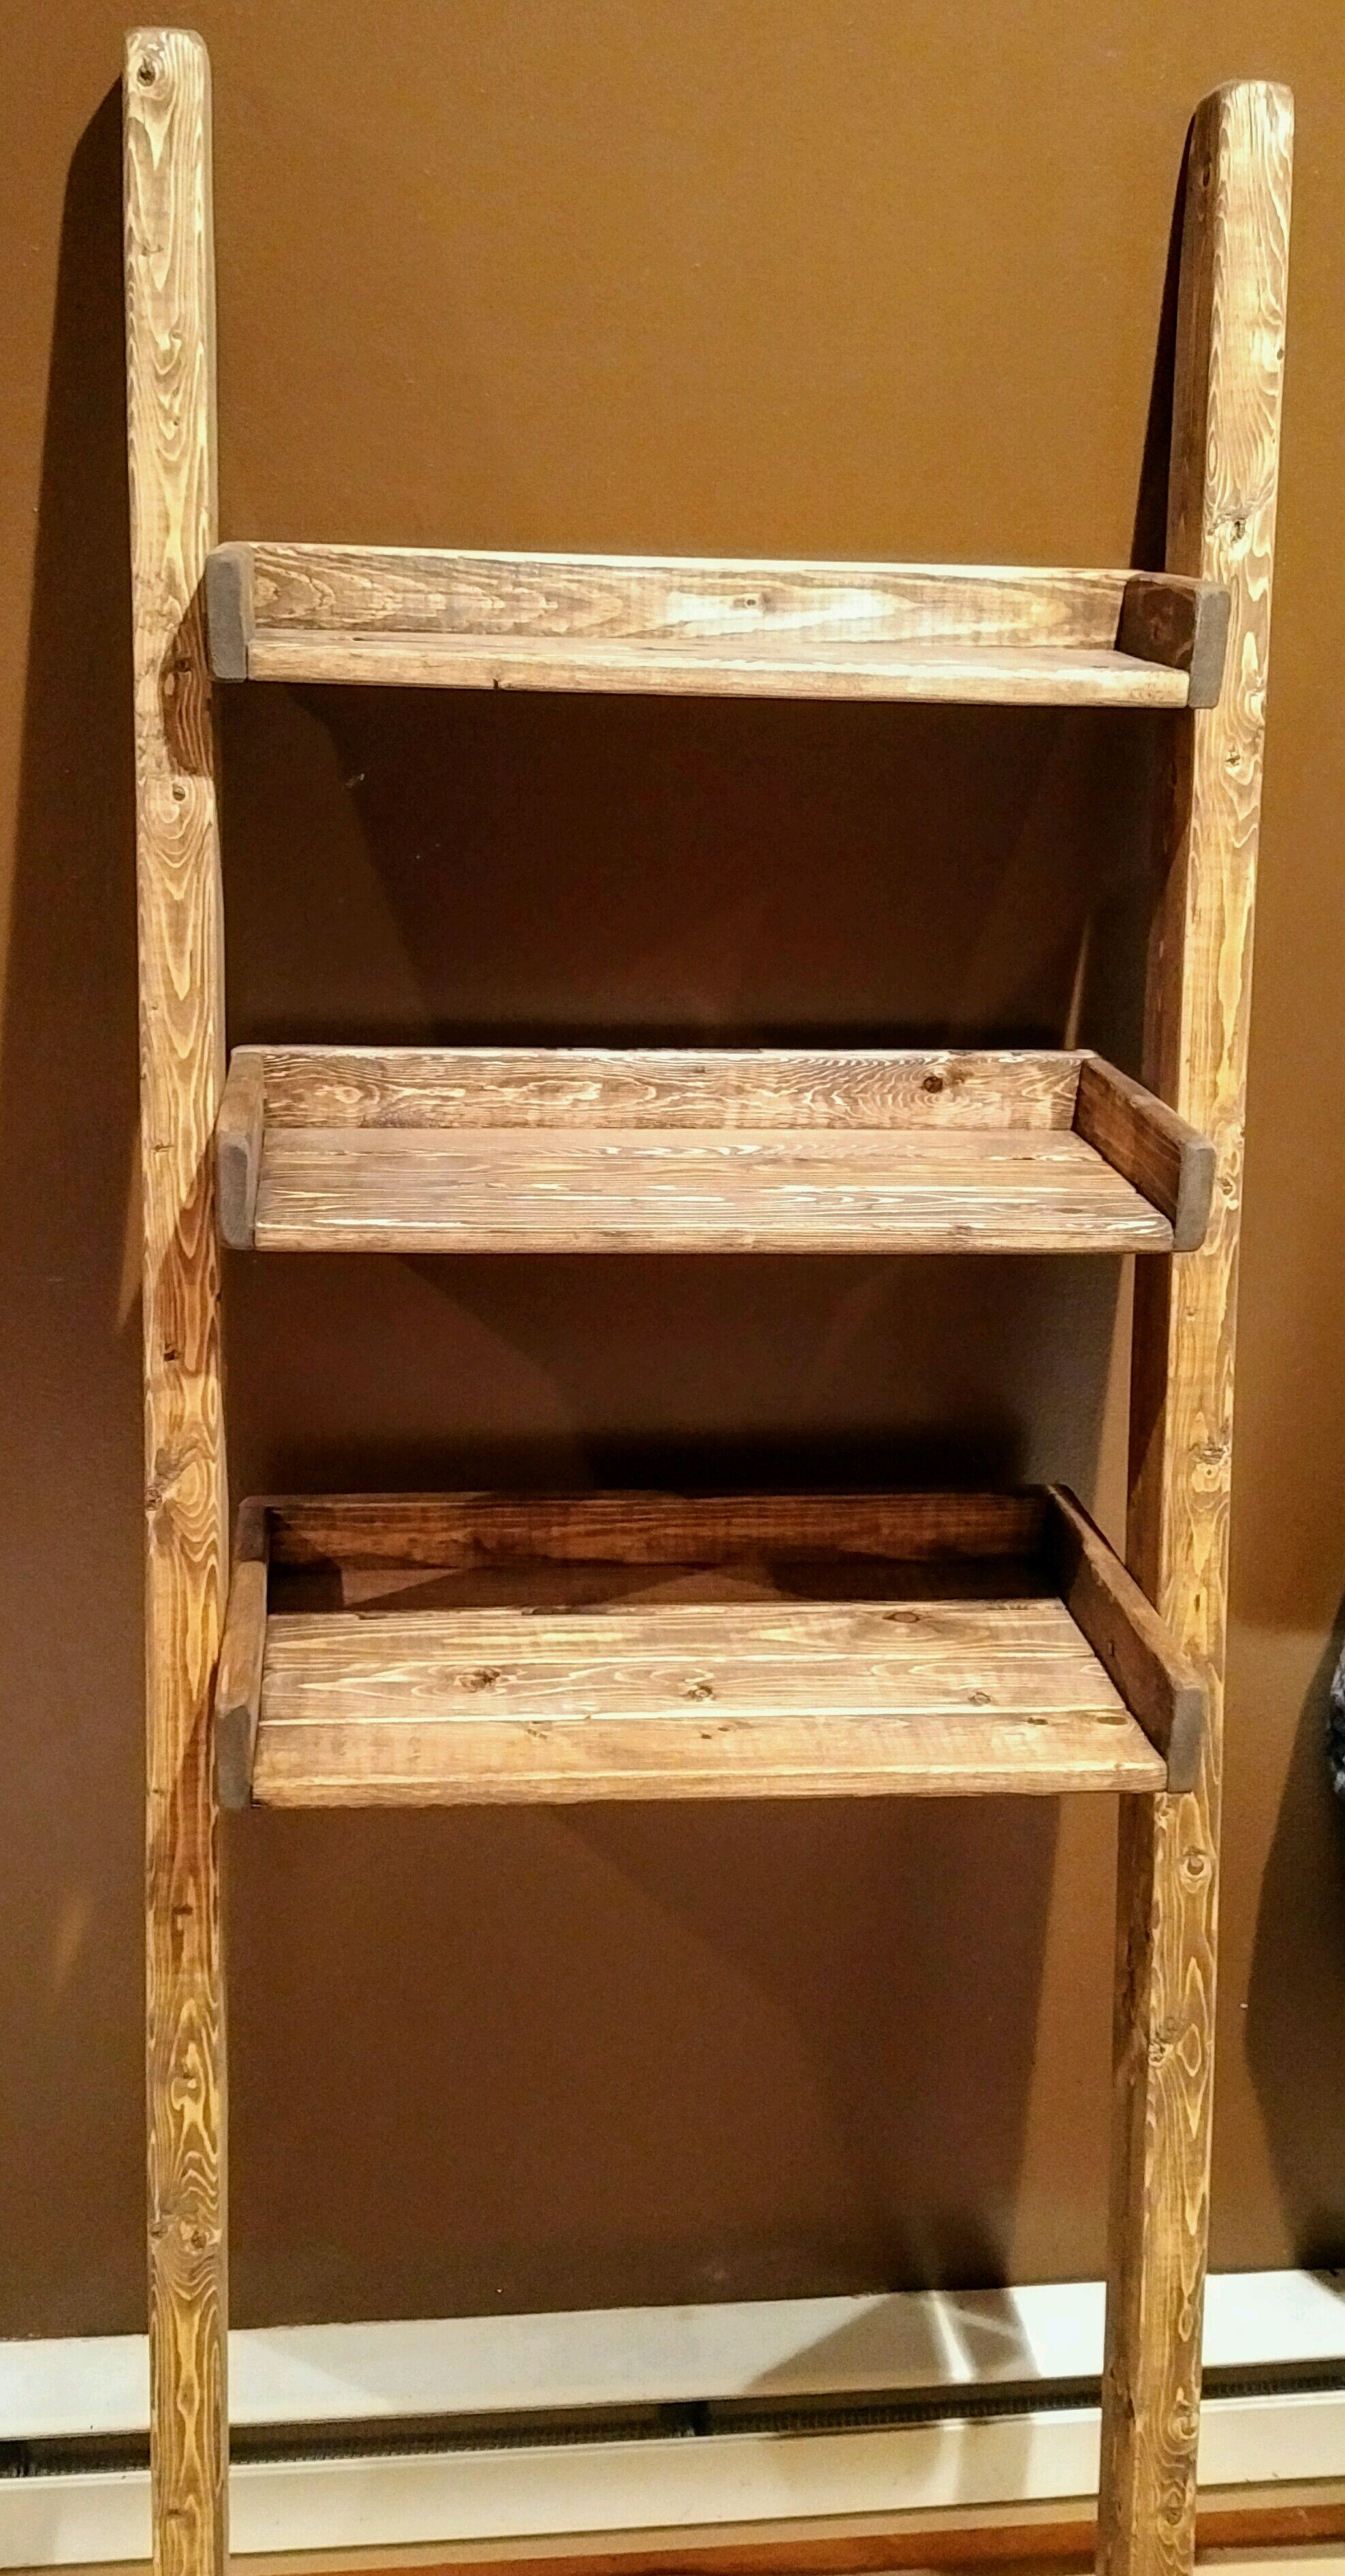 shipping briarwood home garden product leaning ladder wood today shelf decor free bookcase overstock